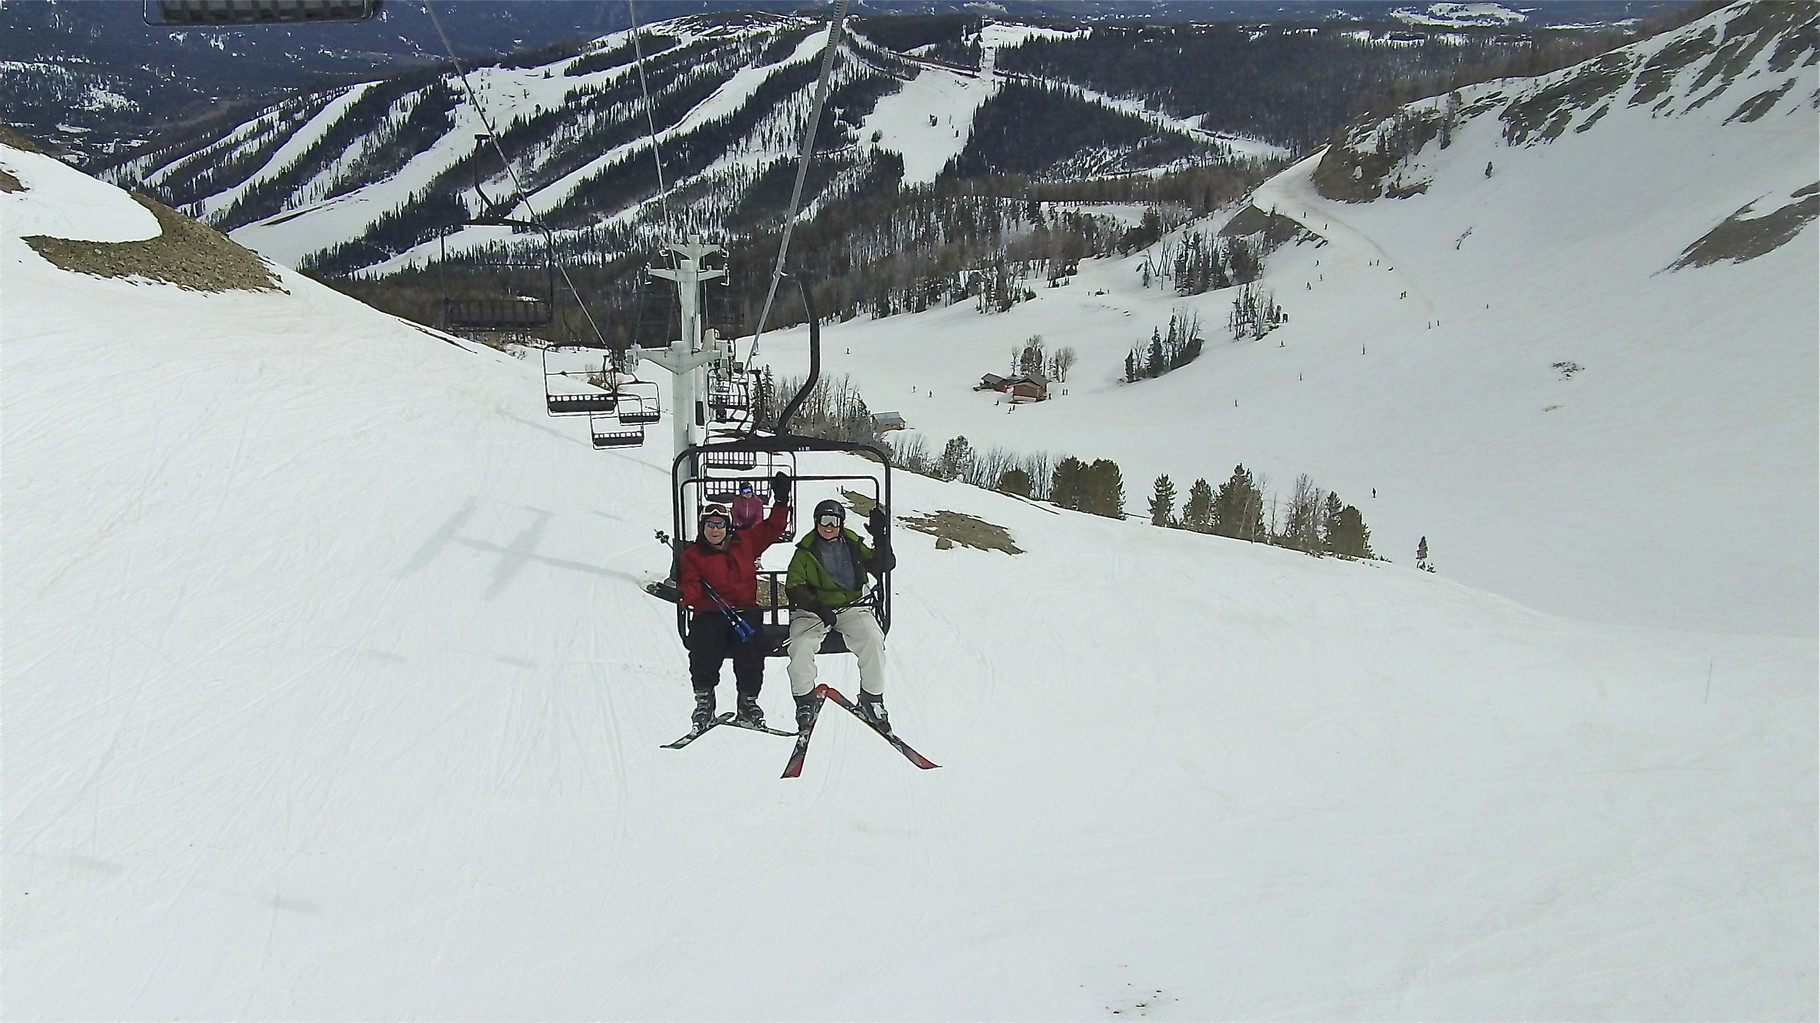 John and Stuart Jr. on the ski lift at Big Sky, Montana